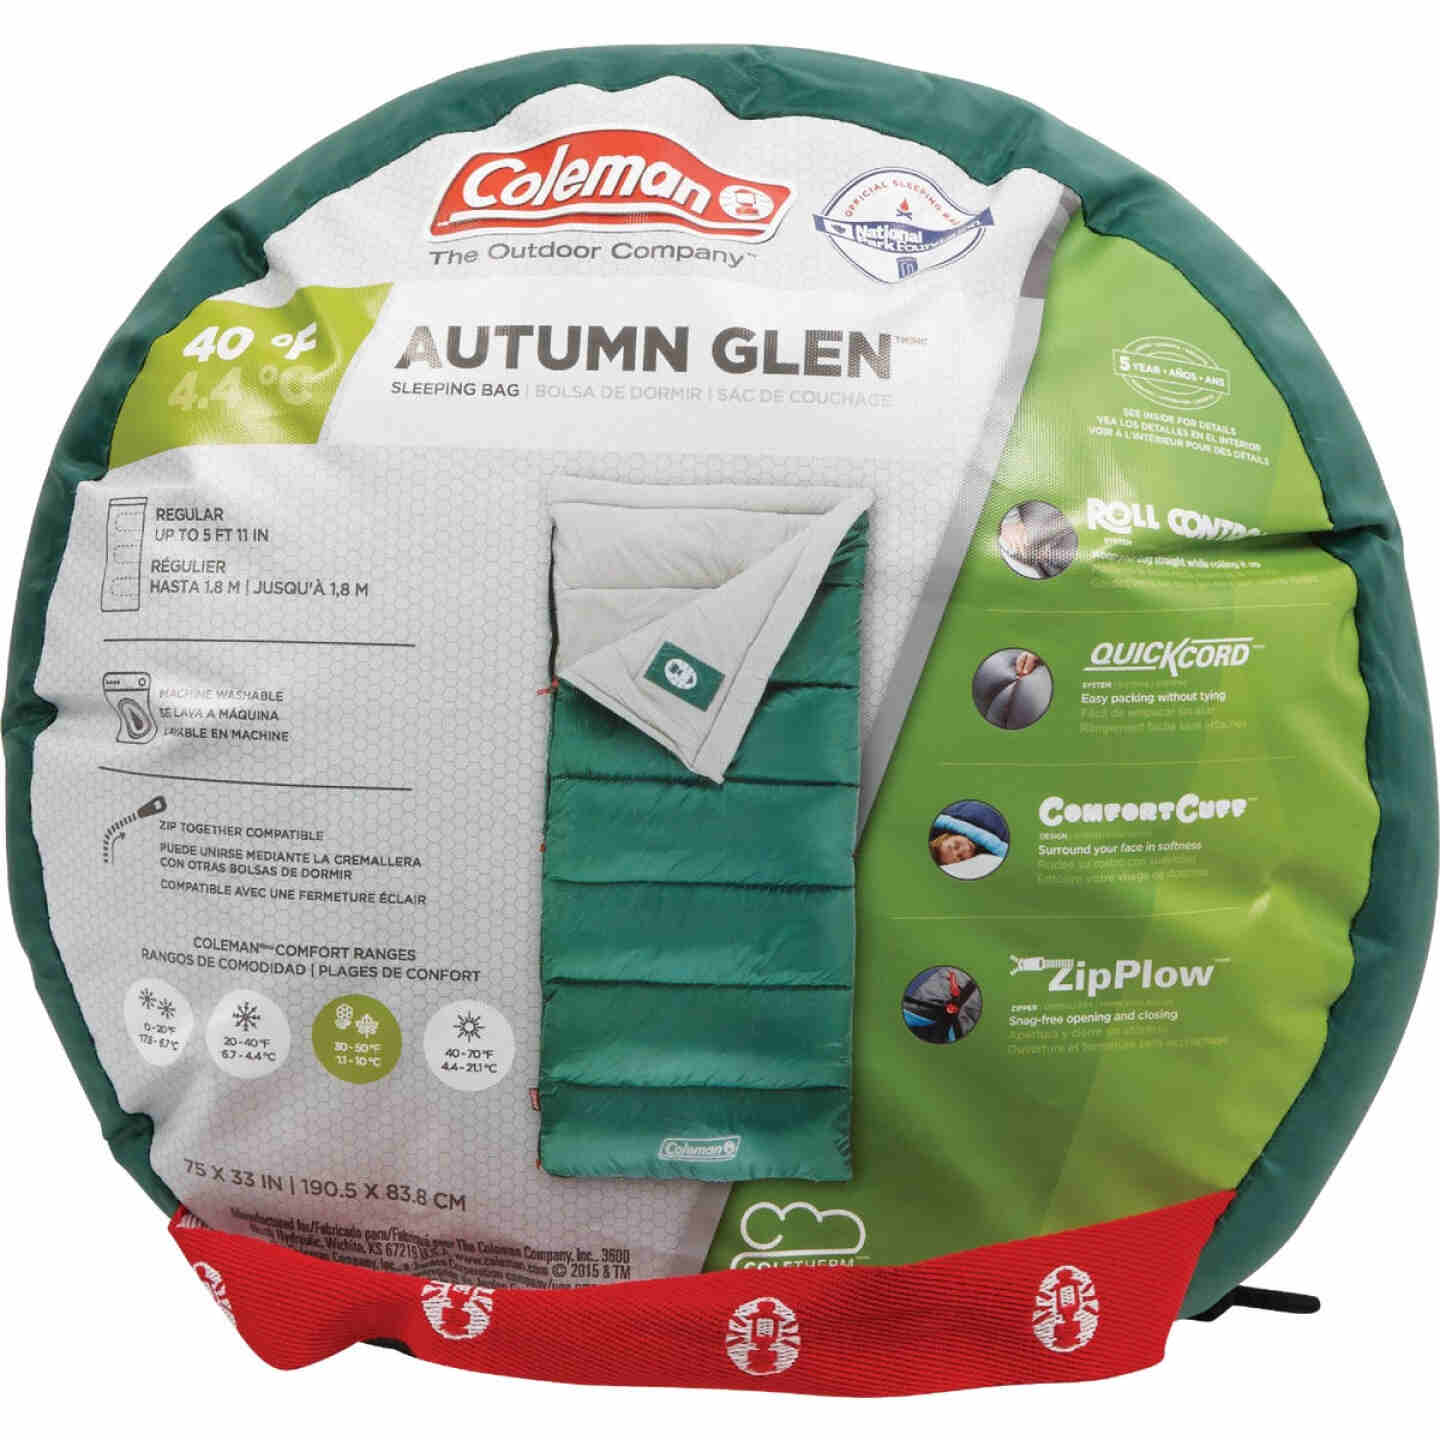 Coleman 40 Degree 33 In. W. x 75 In. L. Green Adult Sleeping Bag Image 2